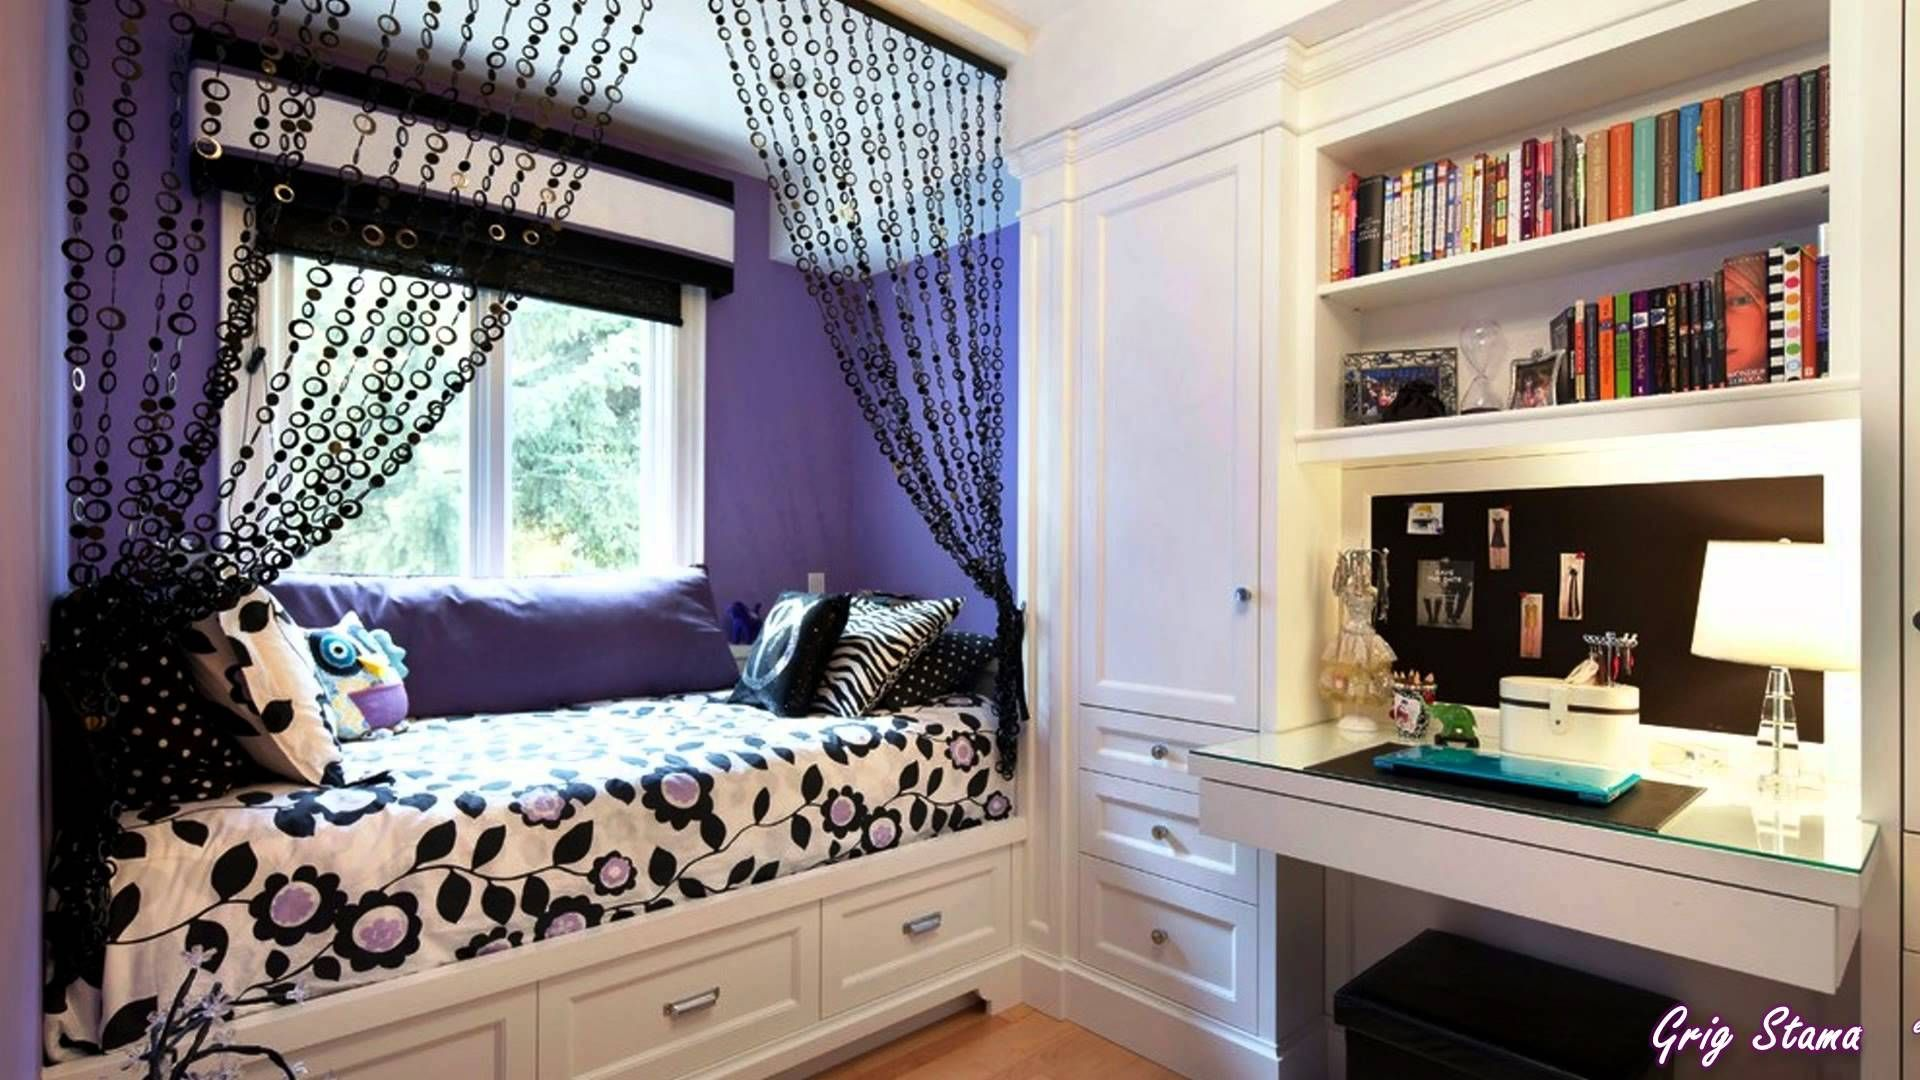 Cool bedroom ideas for teenage girls tumblr - Bedroom Ideas For Teenage Girls Tumblr Simple Cosmoplast Biz